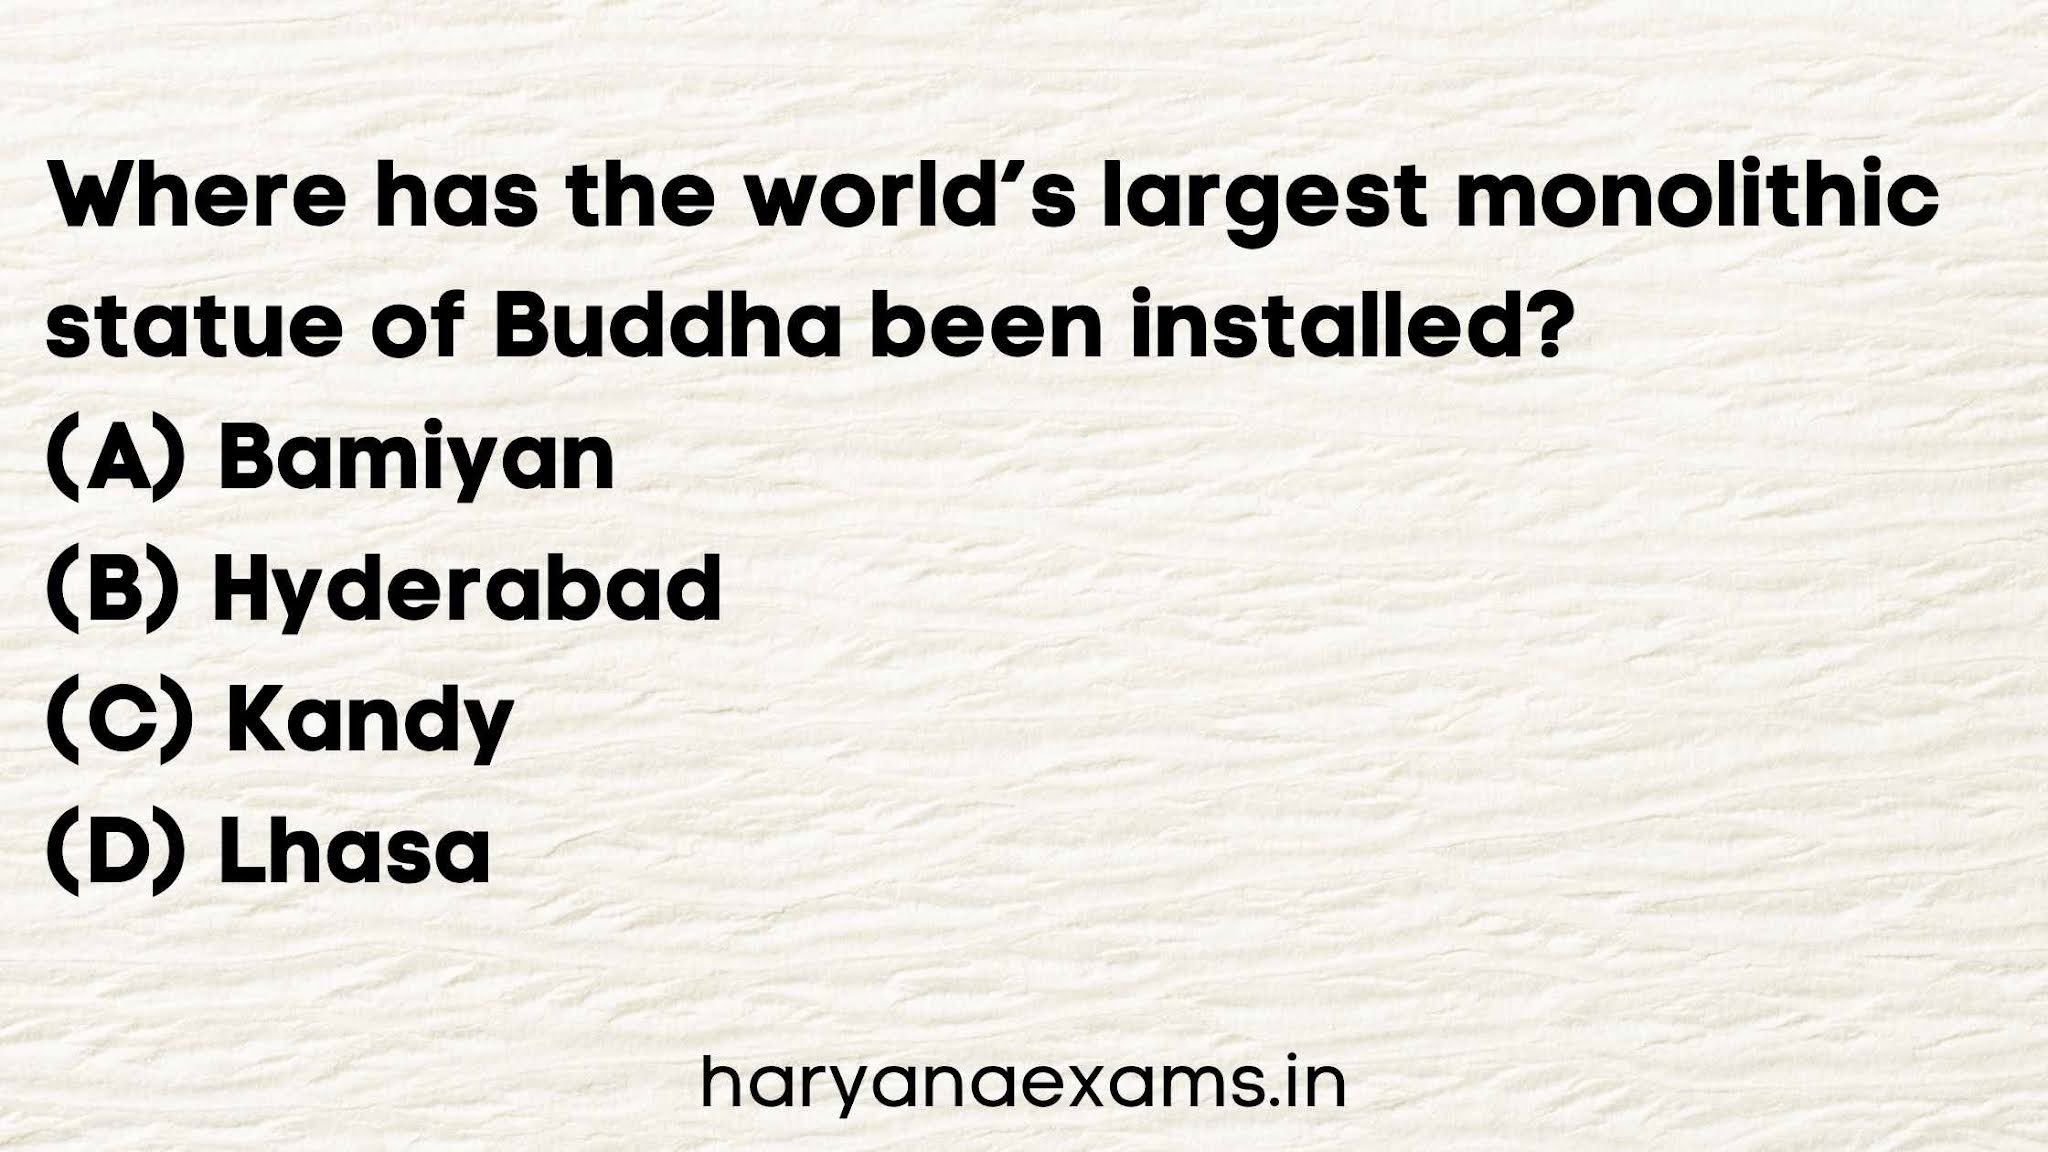 Where has the world's largest monolithic statue of Buddha been installed?   (A) Bamiyan   (B) Hyderabad   (C) Kandy   (D) Lhasa